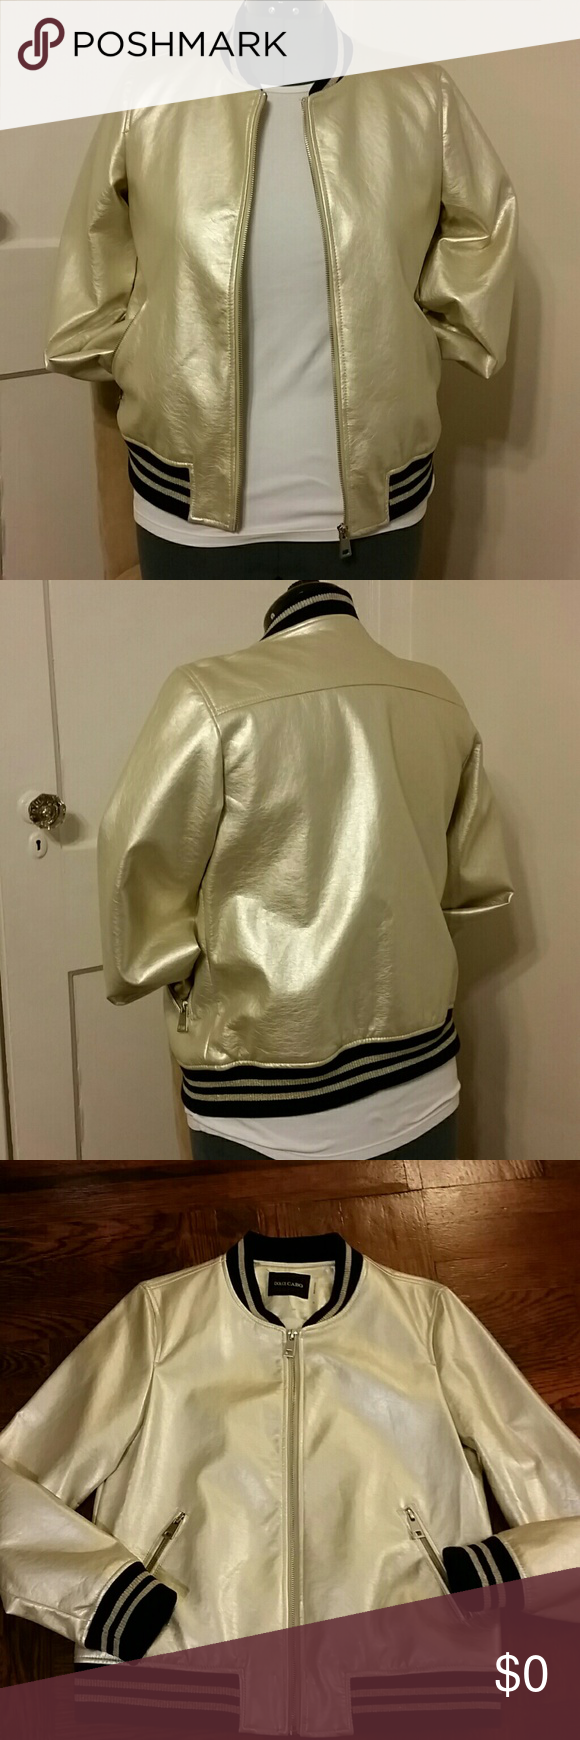 NWT DolceCabo bomber jacket Beautiful on trend white gold